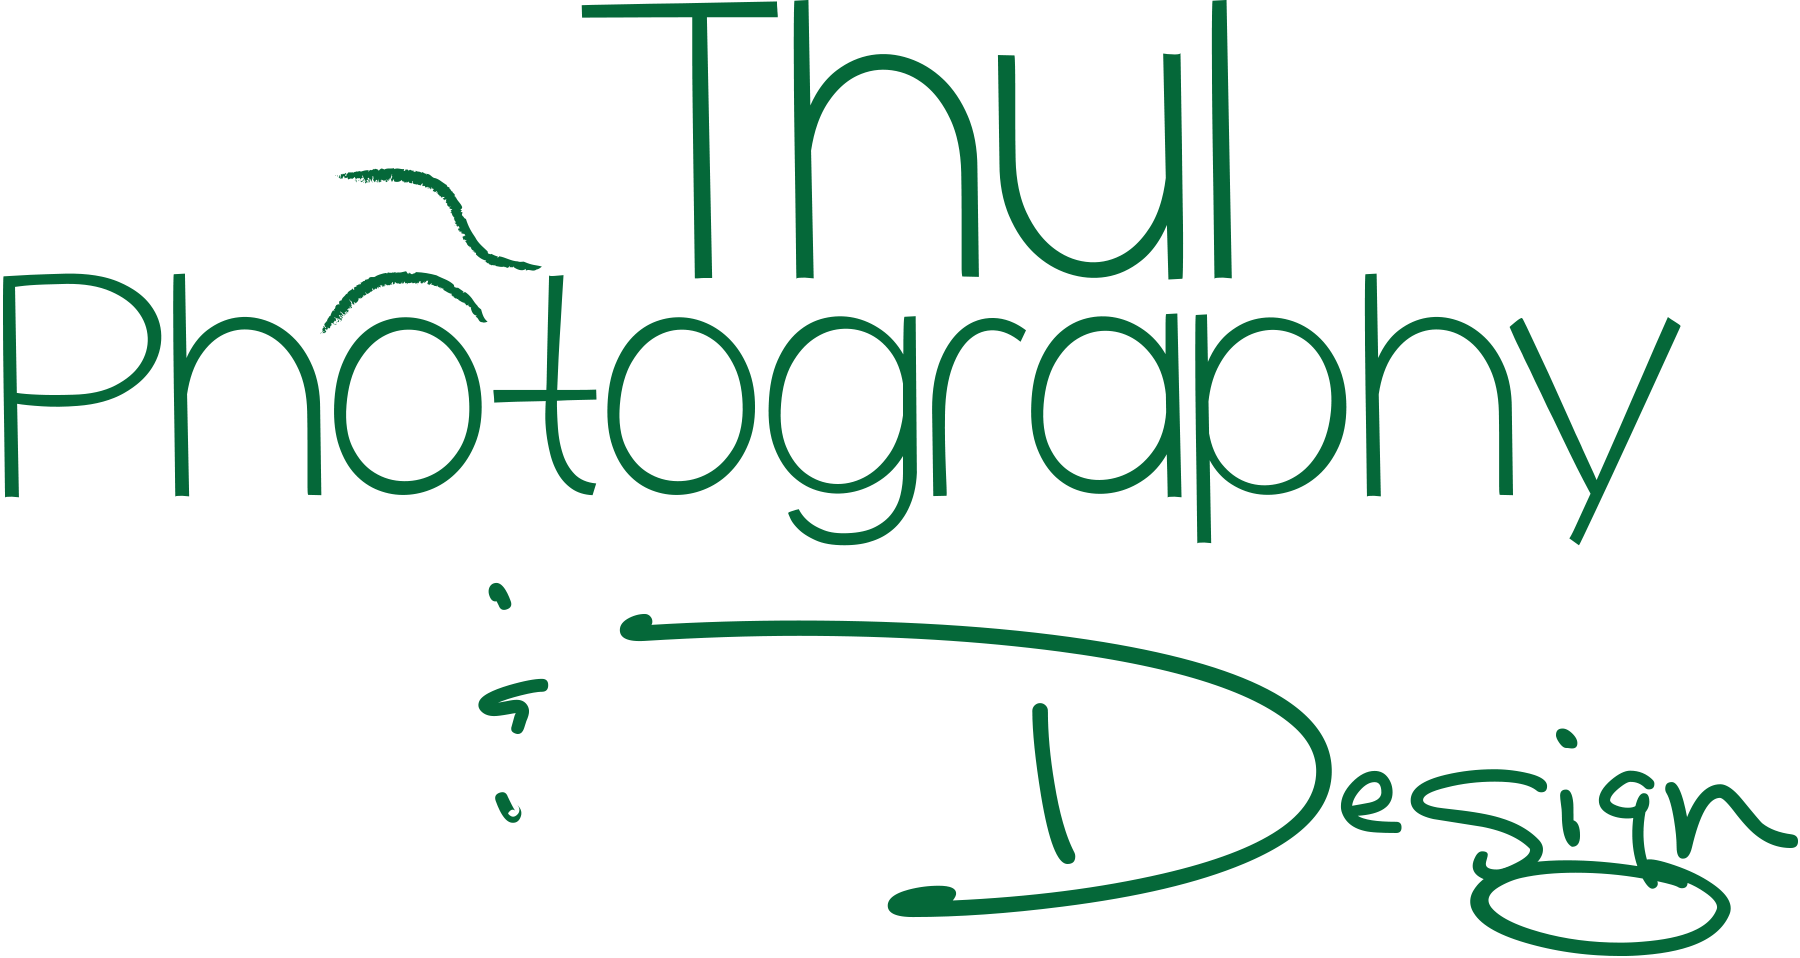 Thul Photography